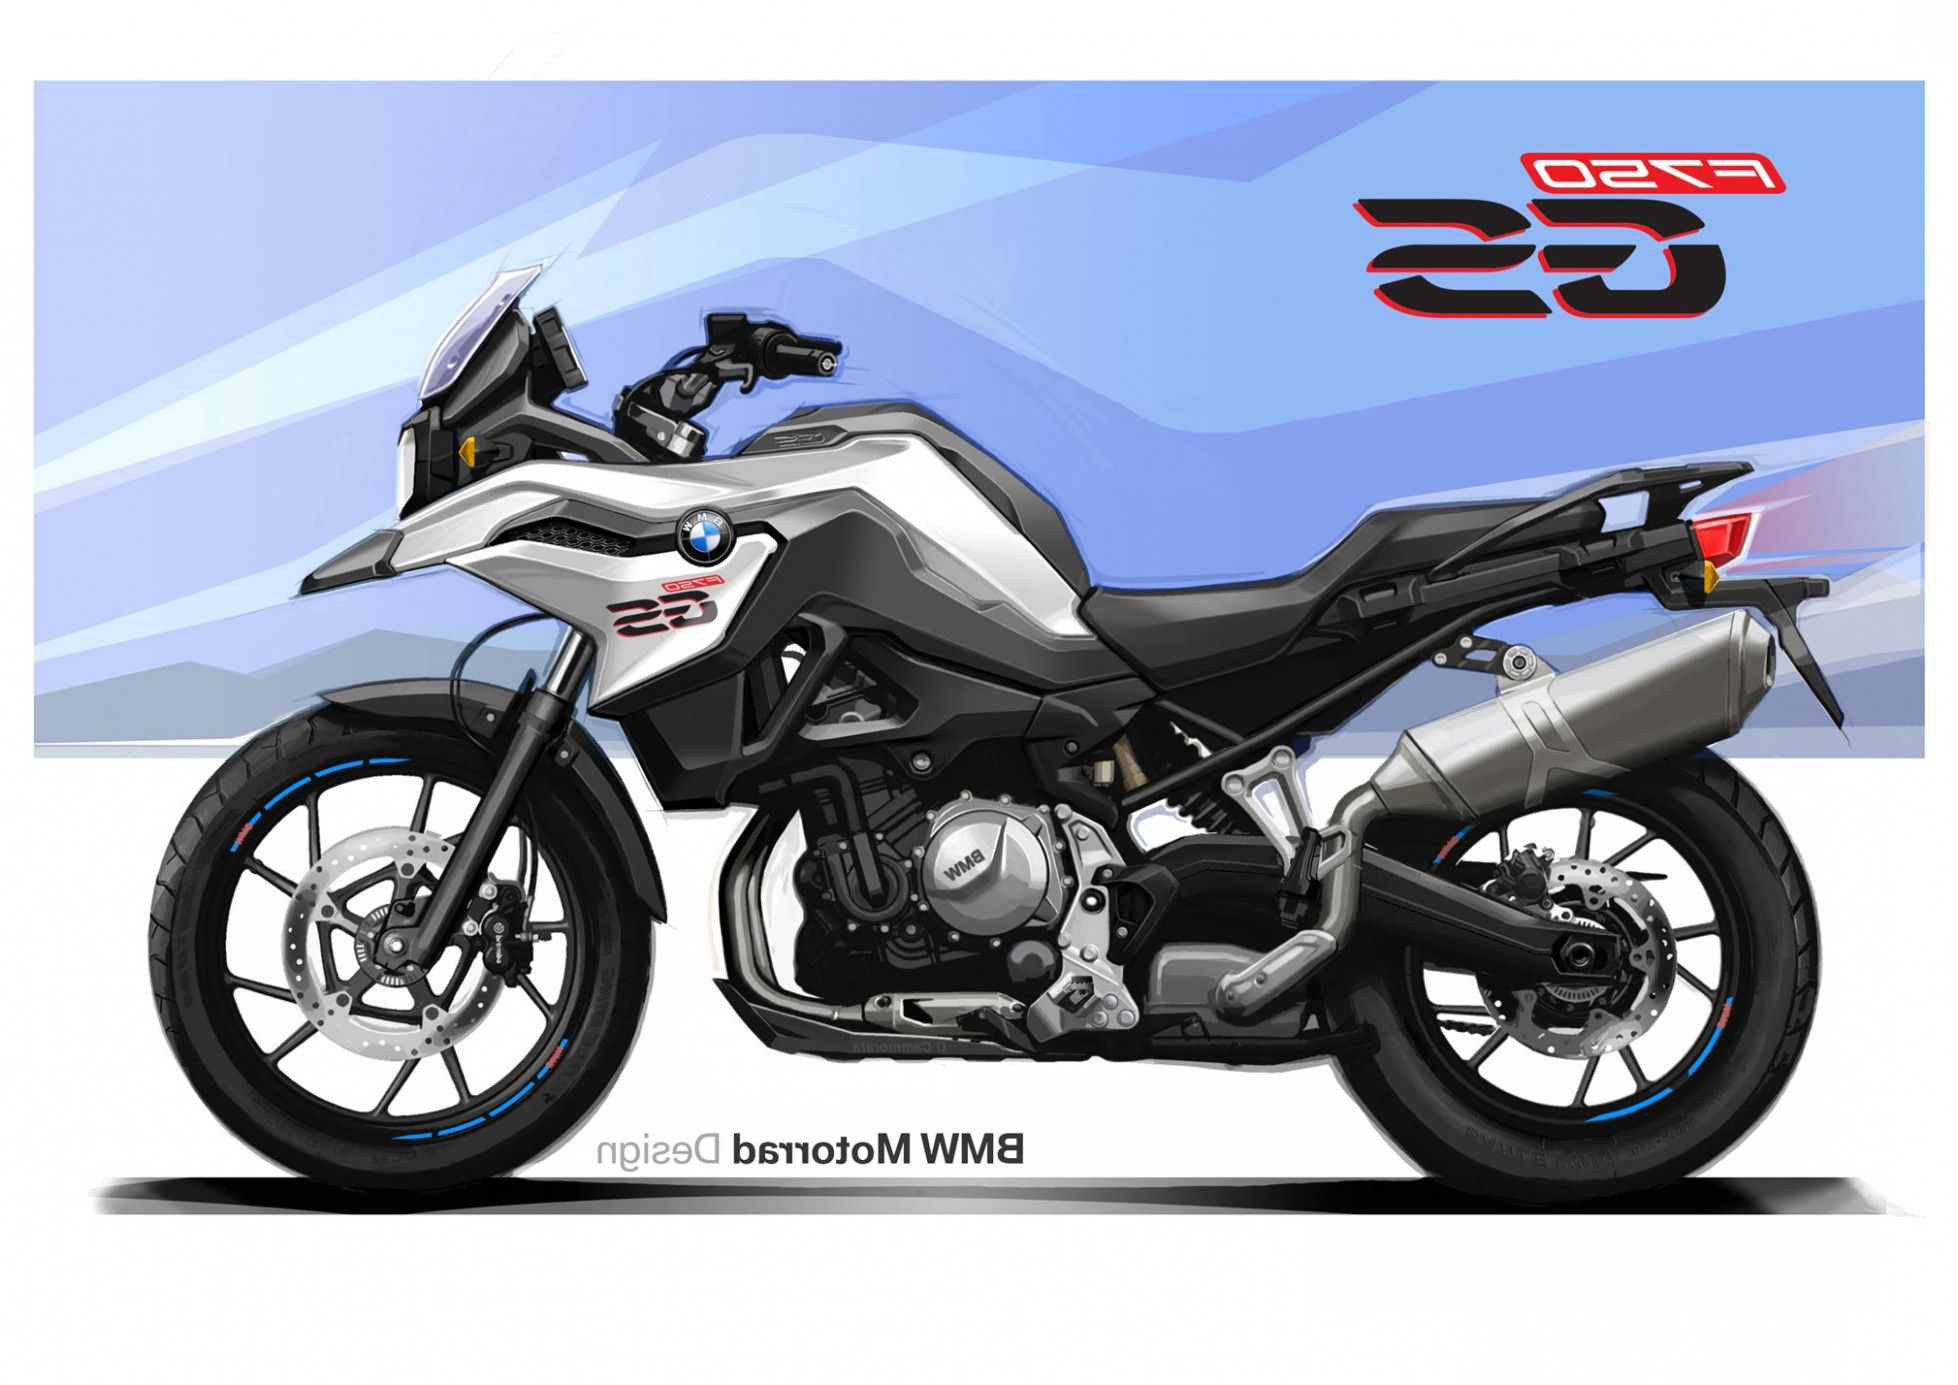 Top 10 Trends In 2020 Bmw F750gs Specs To With Images Concept Cars Bmw Bikes For Sale